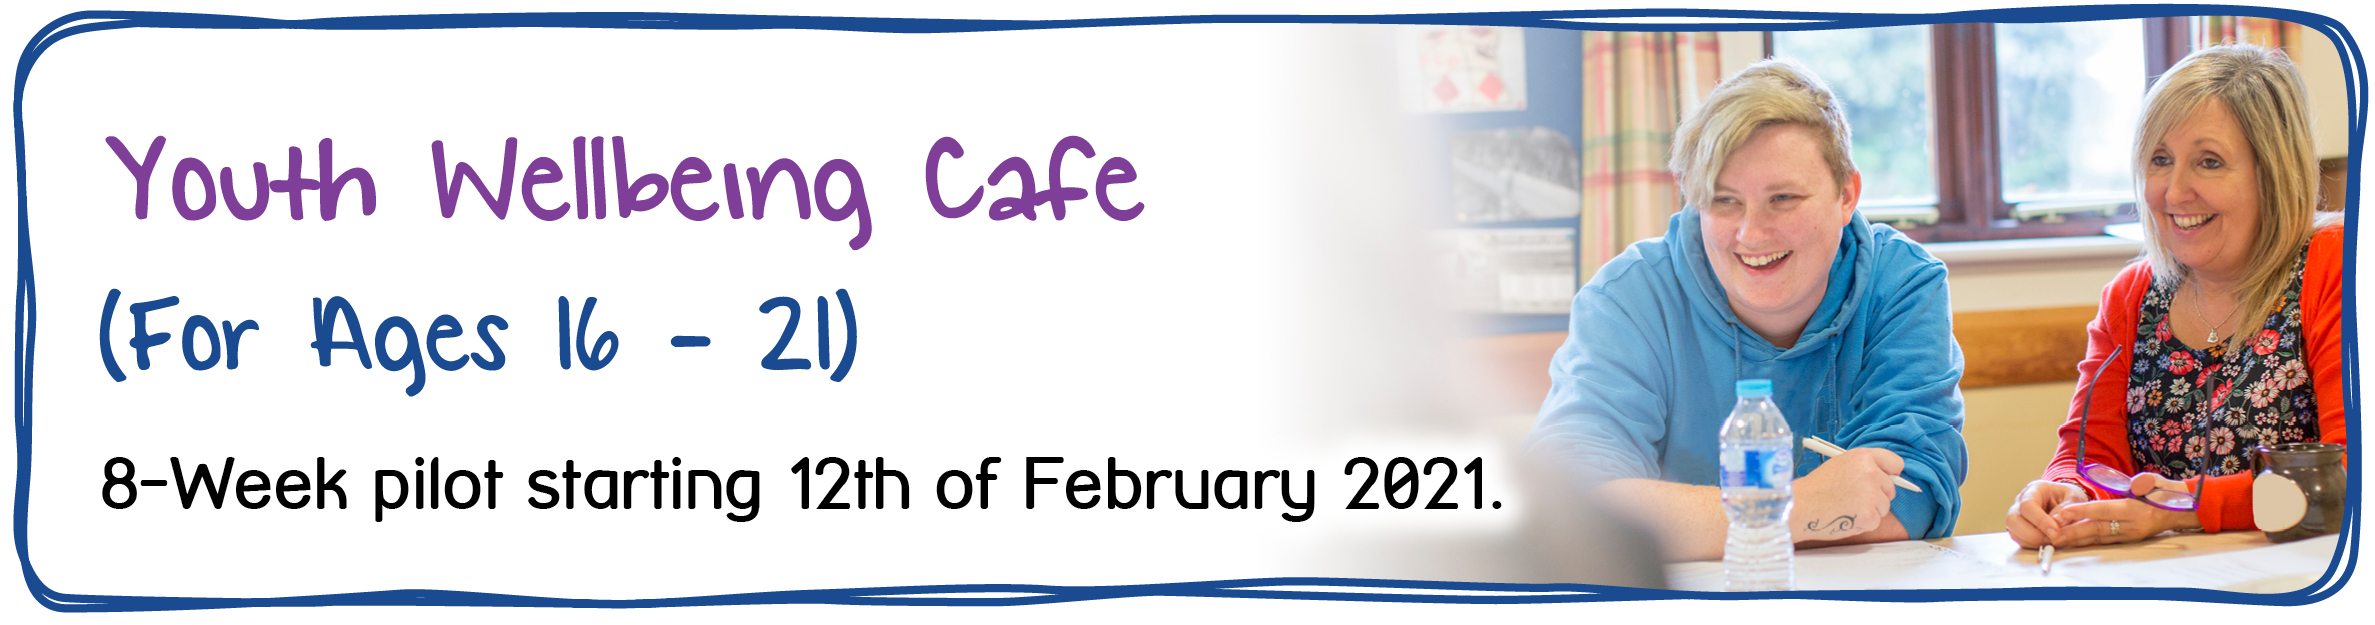 Youth Wellbeing Cafe (For Ages 16-21). 8-week pilot starting 12th of February 2021.